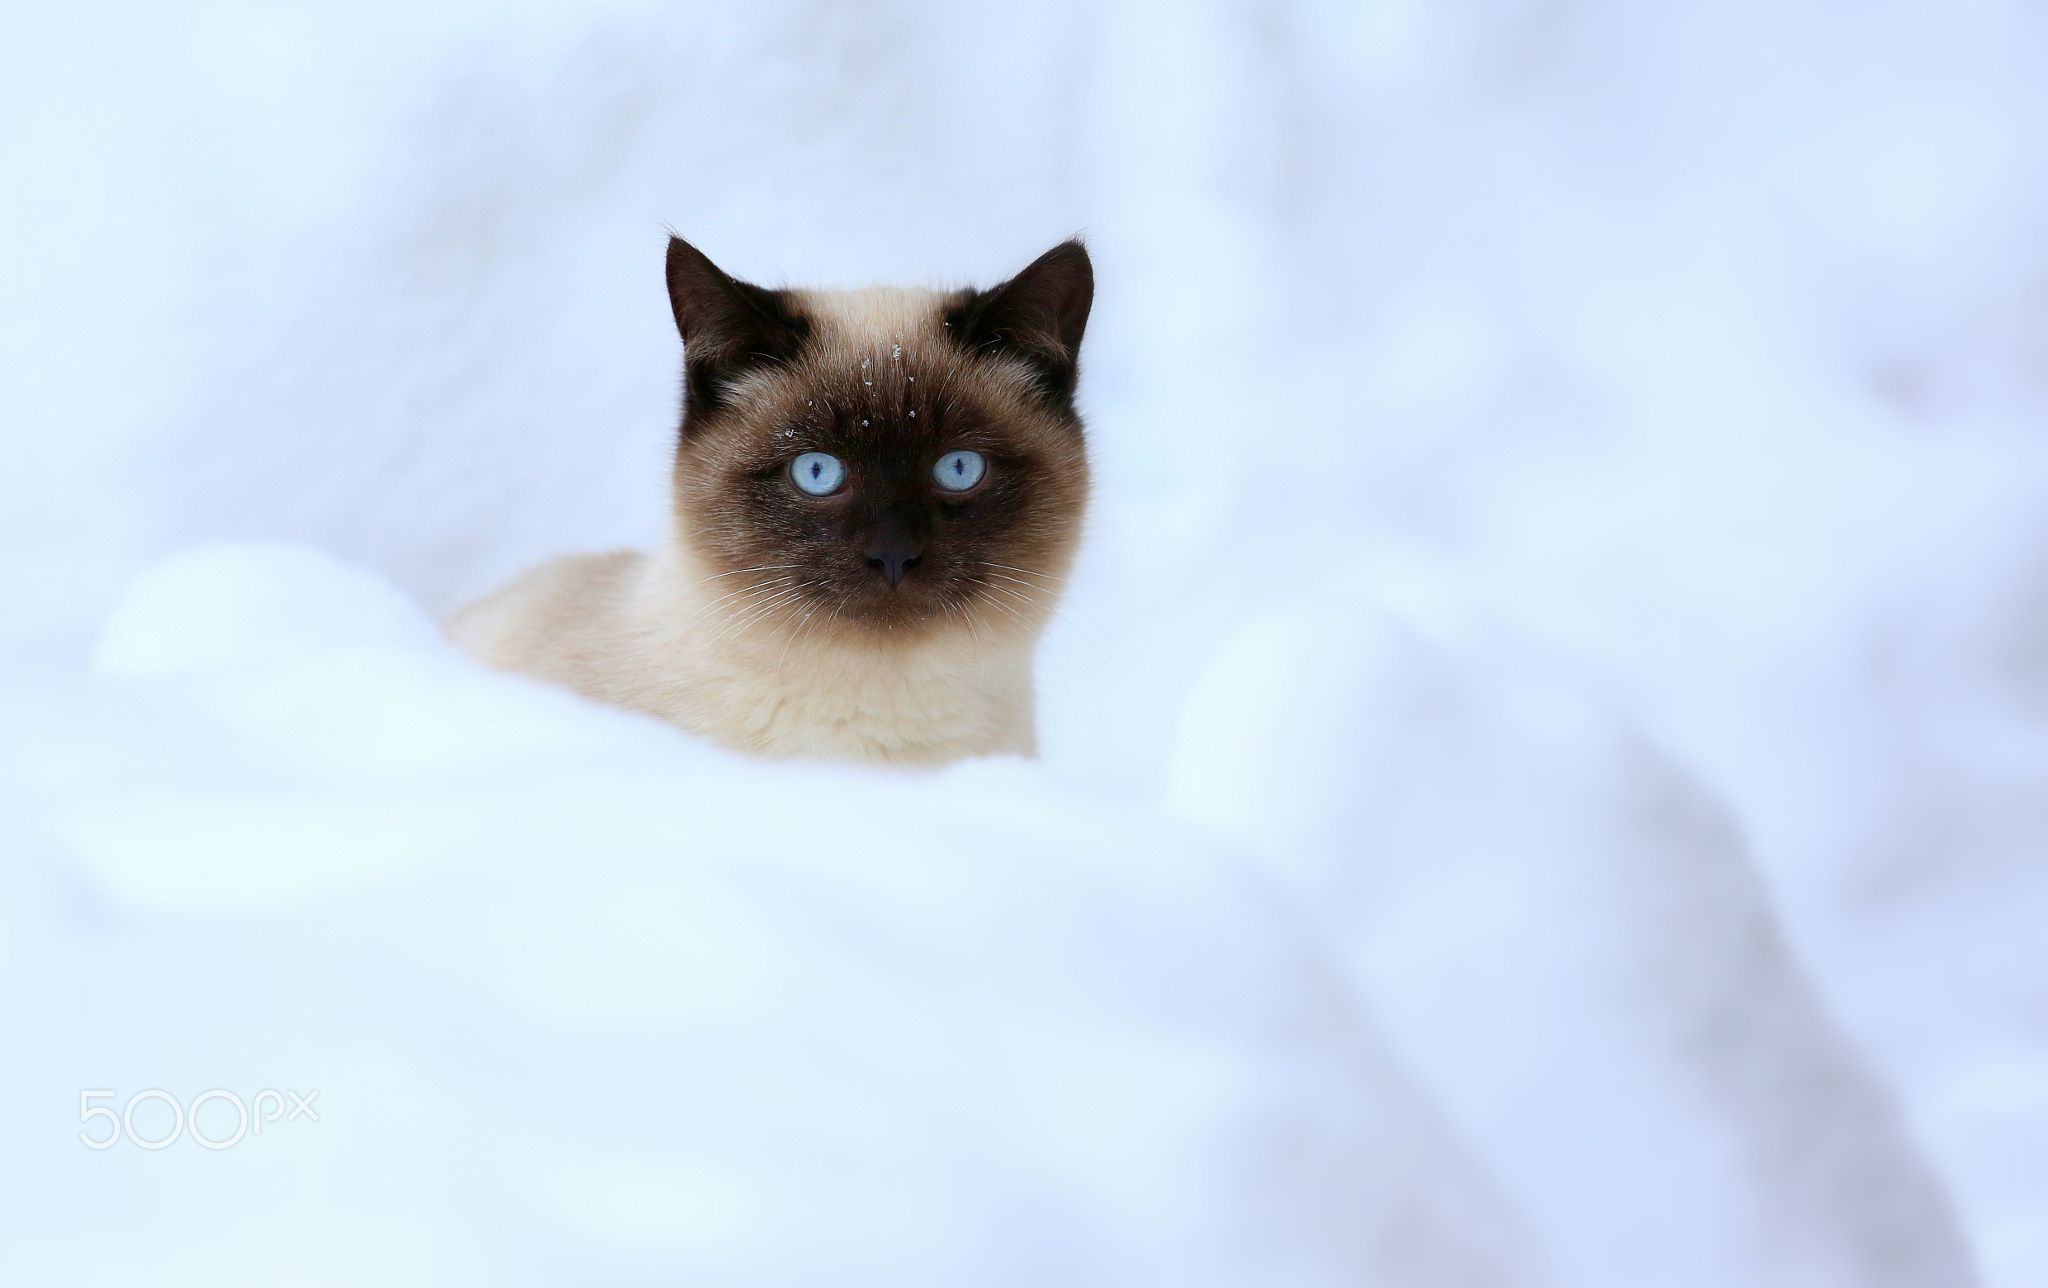 Siamese Cat And Snow Siamese Kitten The First Time Saw Snow Cats Siamese Cats Siamese Kittens Cat Aesthetic